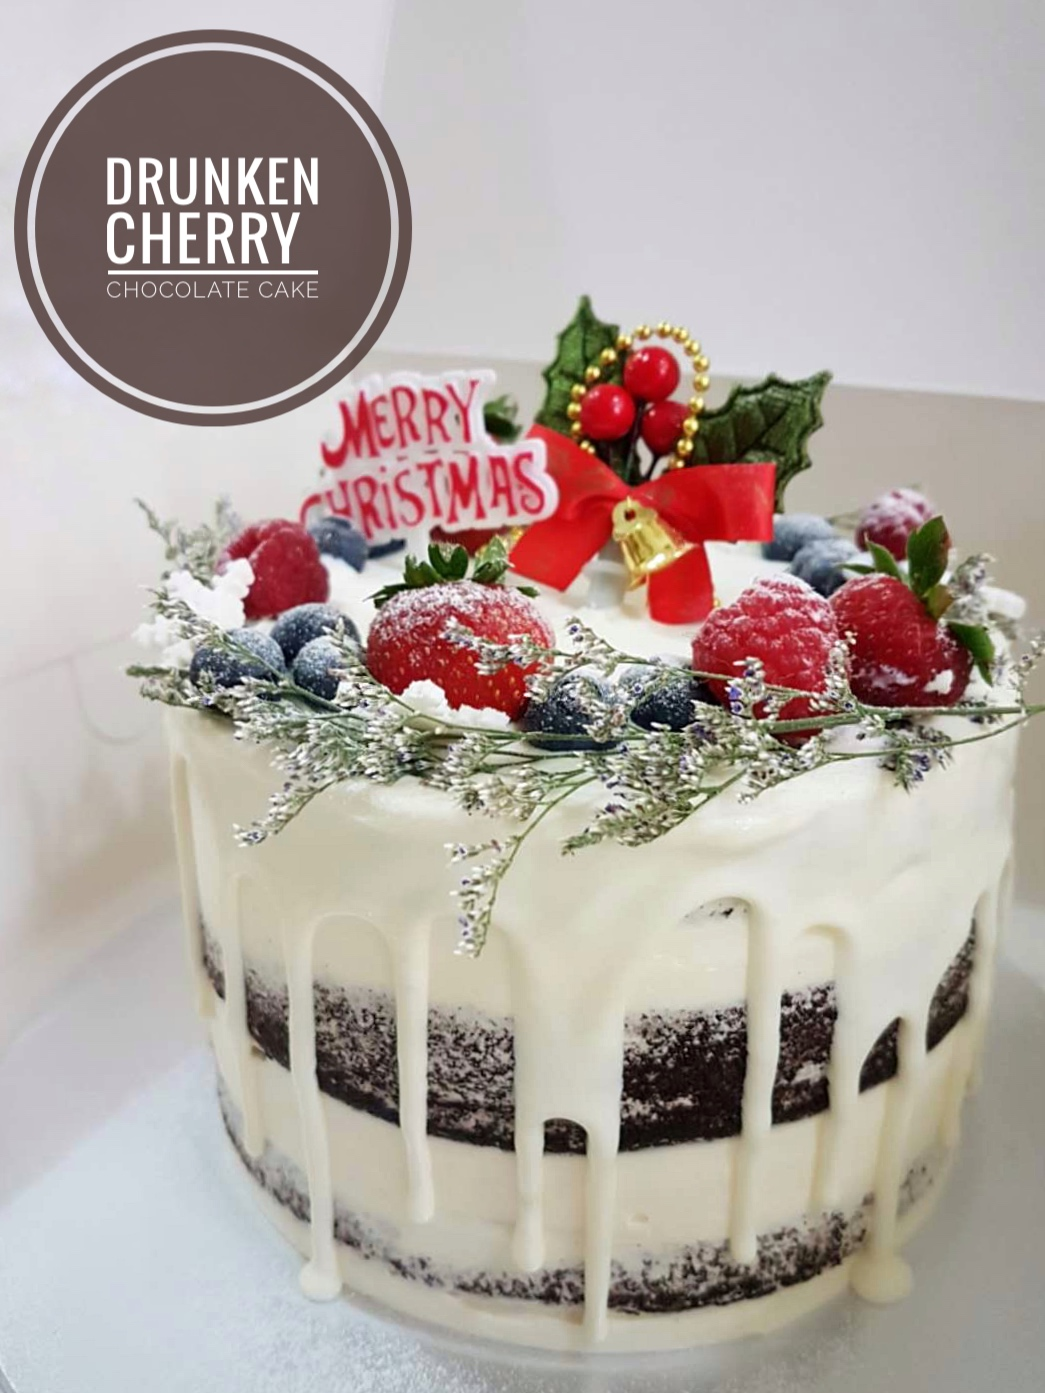 Christmas Special Cake Images : *Christmas Special* Drunken Cherry Chocolate Cake   Corine ...